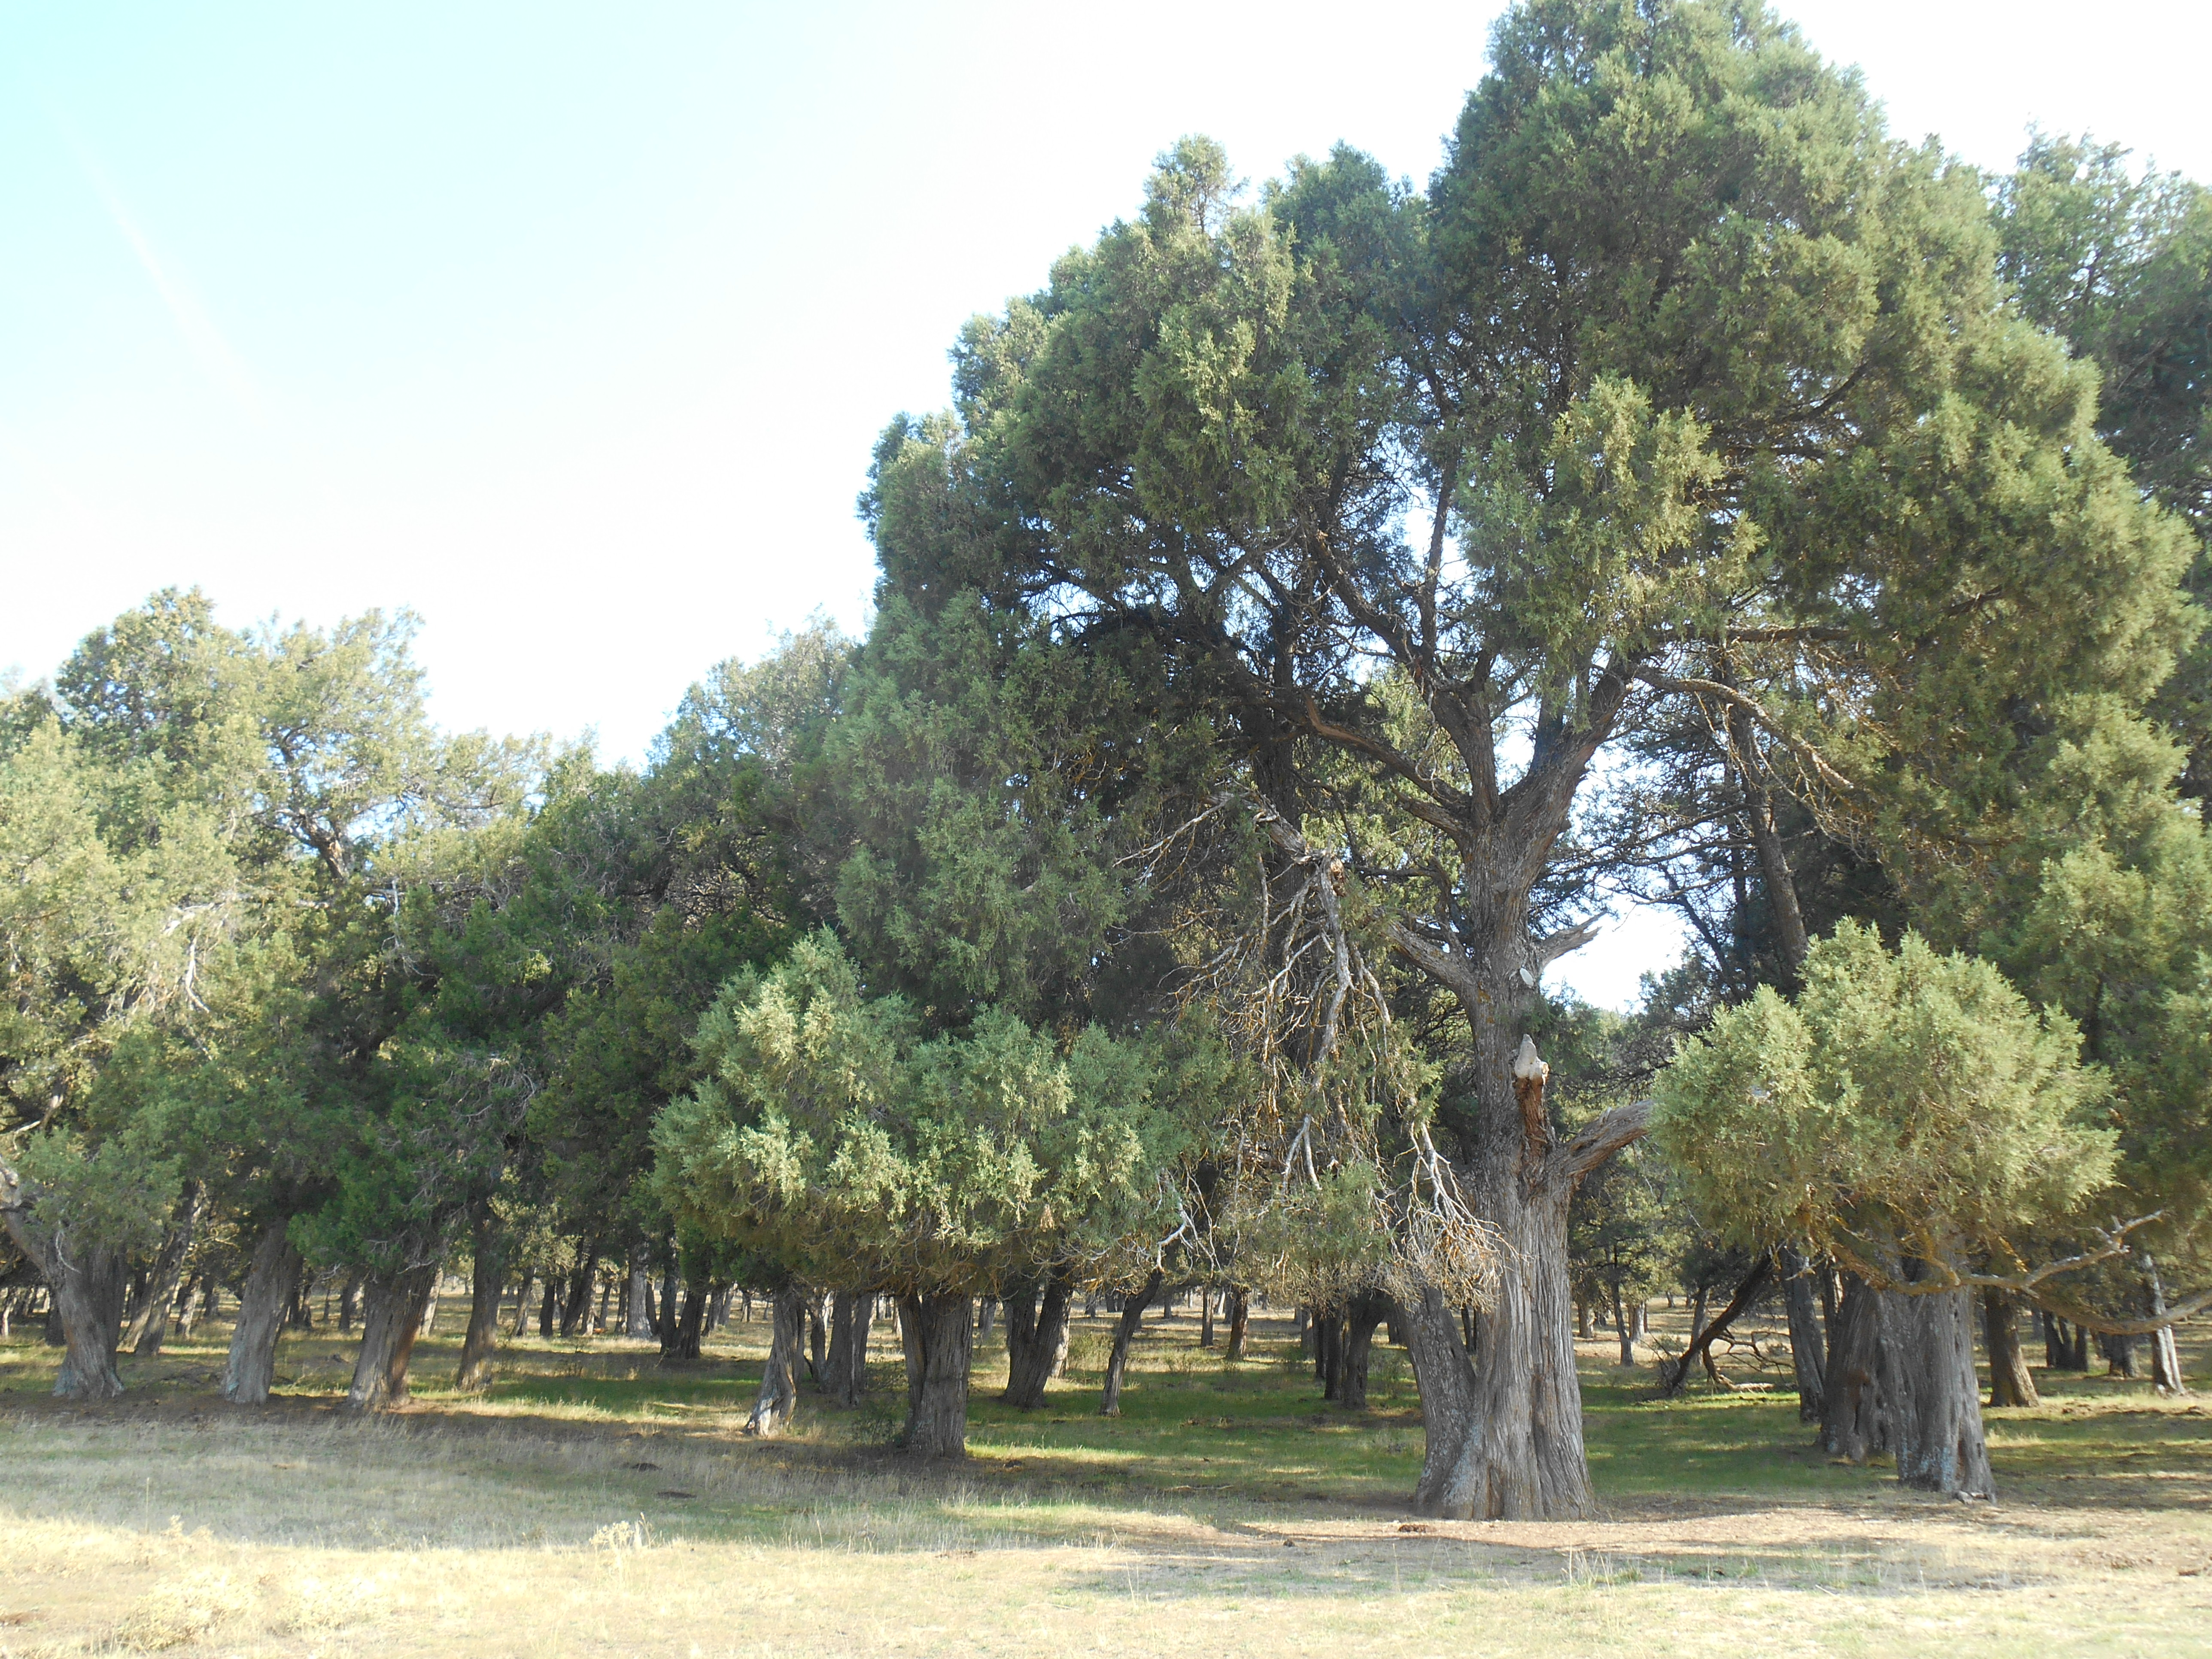 The densest forest of Juniperus thurifera is in Soria